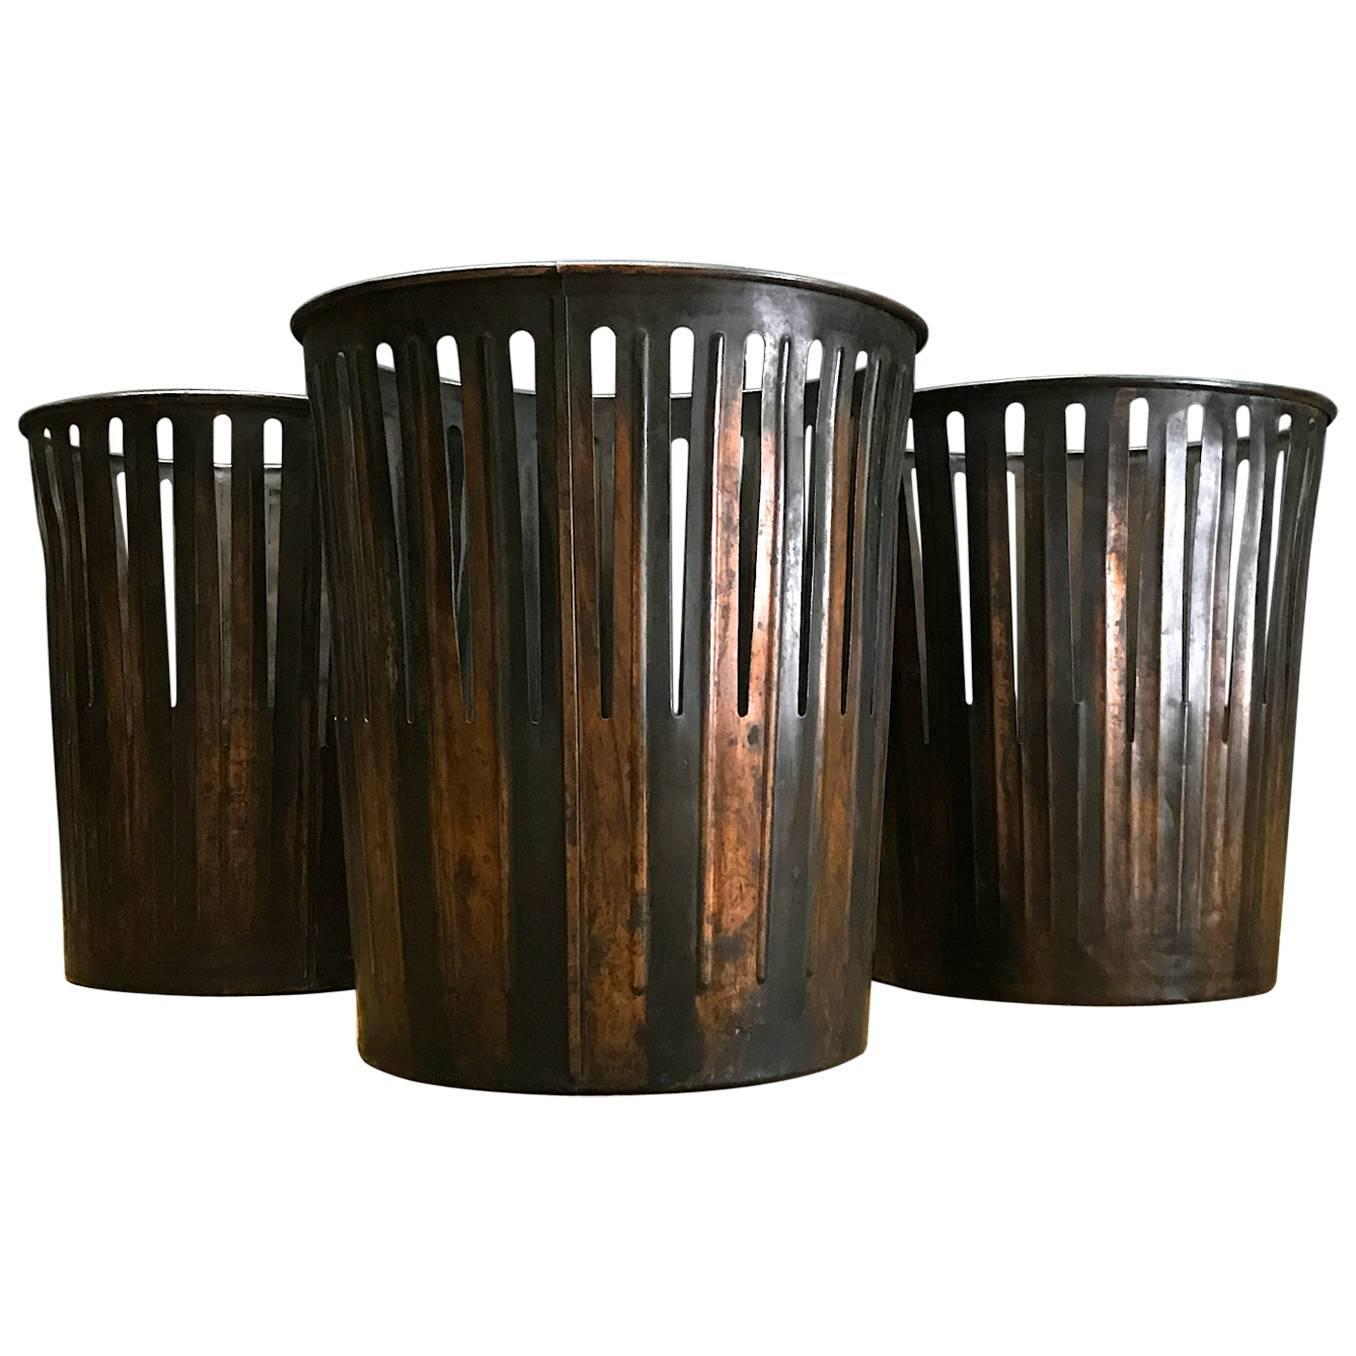 Japanned finished industrial copper office wastebaskets trash cans victorian era at 1stdibs